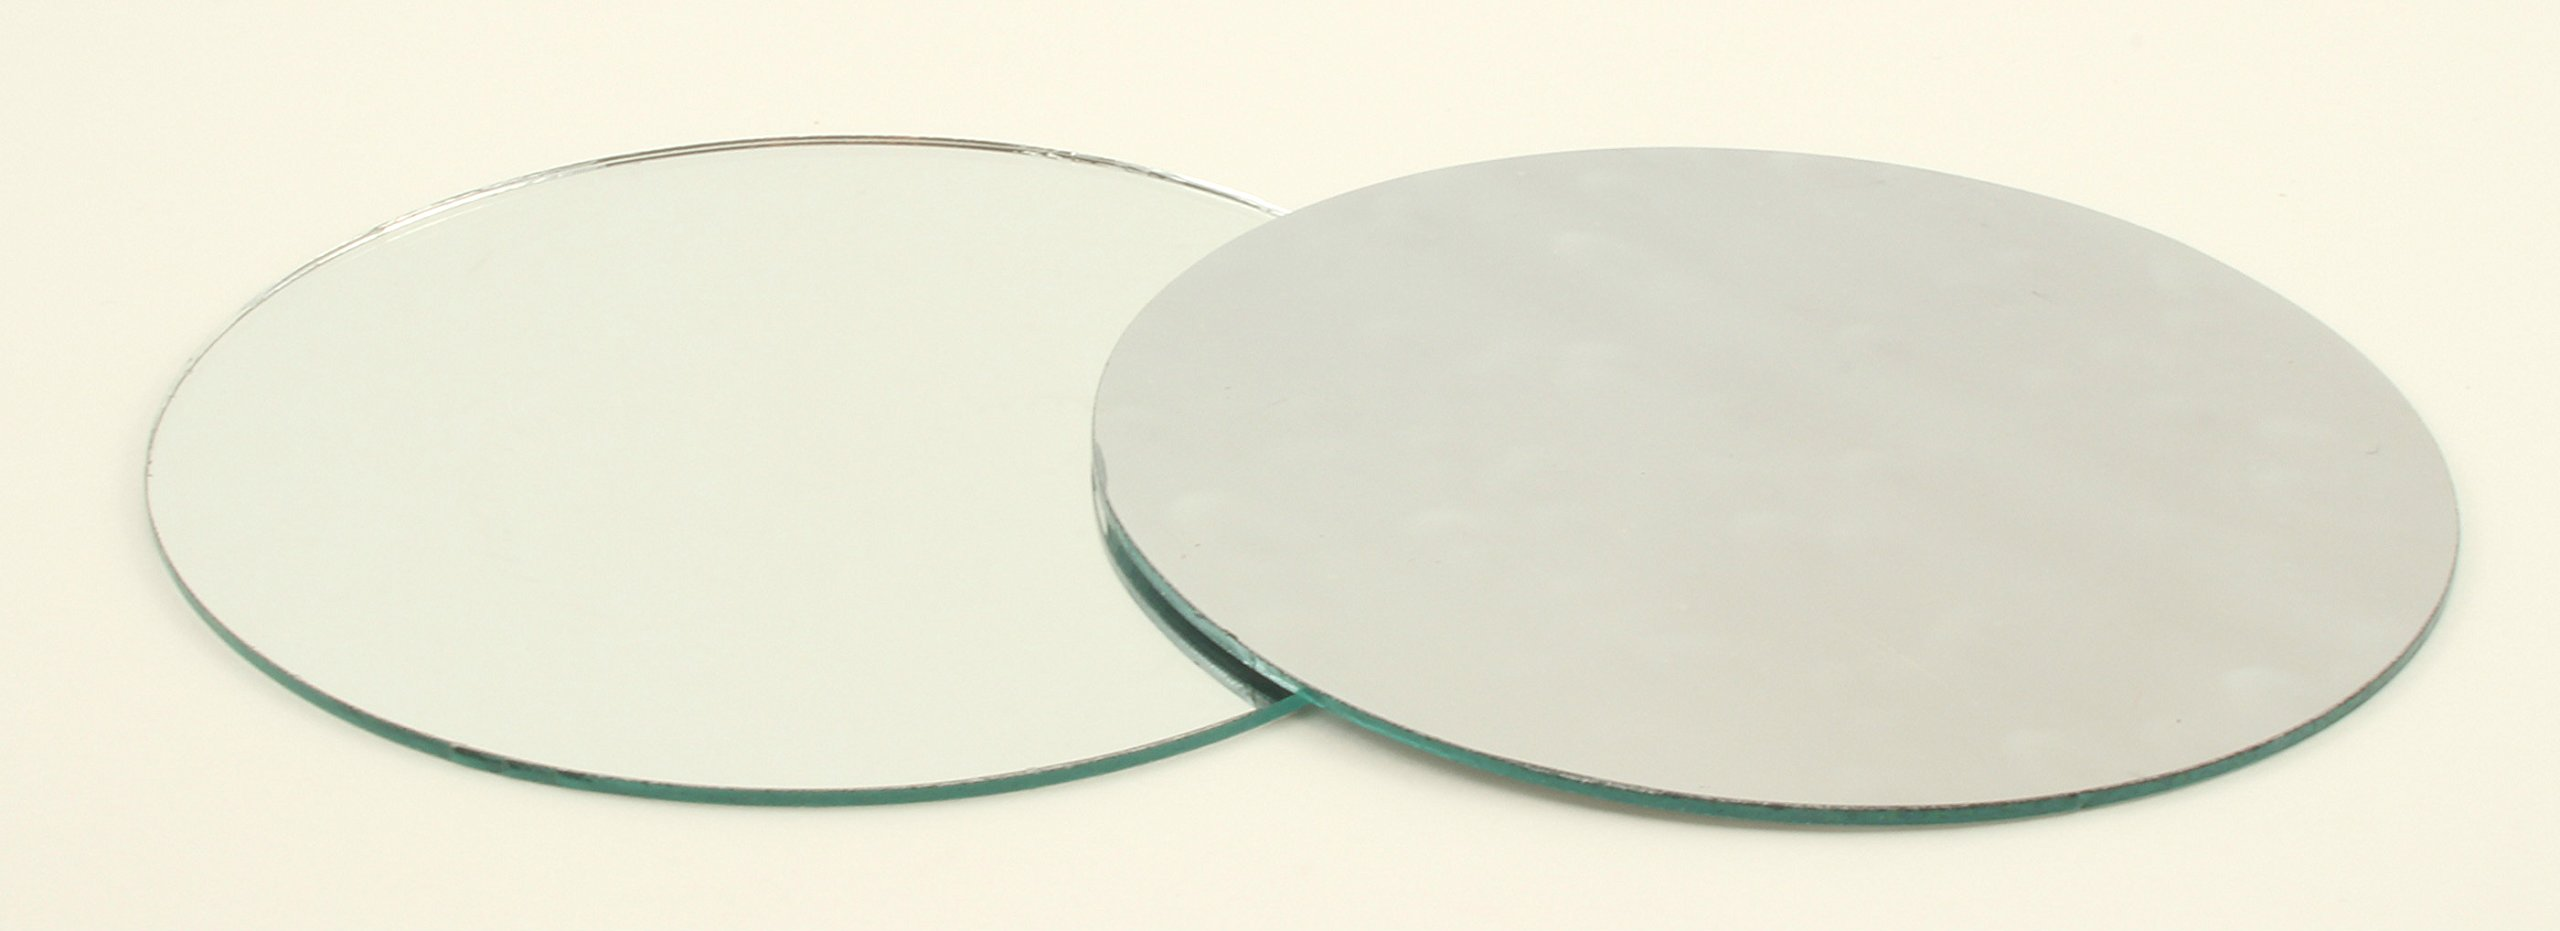 Art Cove 6 inch Large Round Craft Mirrors 12 Piece Also Mirror Mosaic Tiles by Art Cove